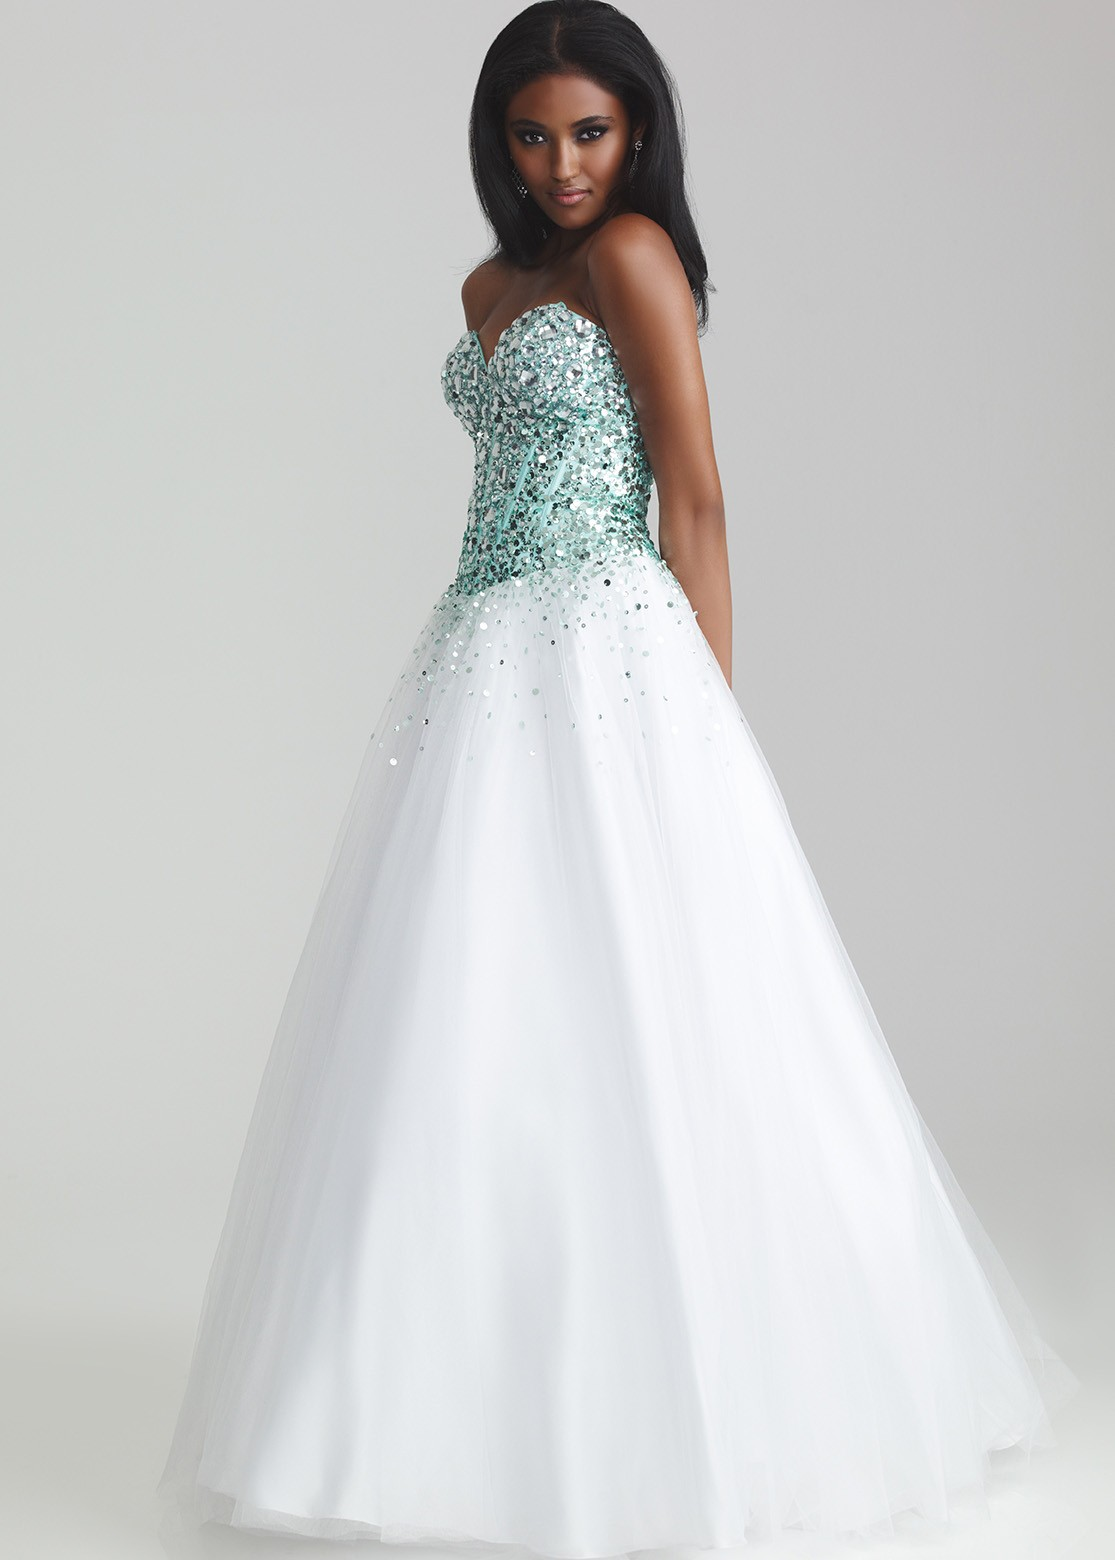 Aqua, white strapless ball gown prom dresses